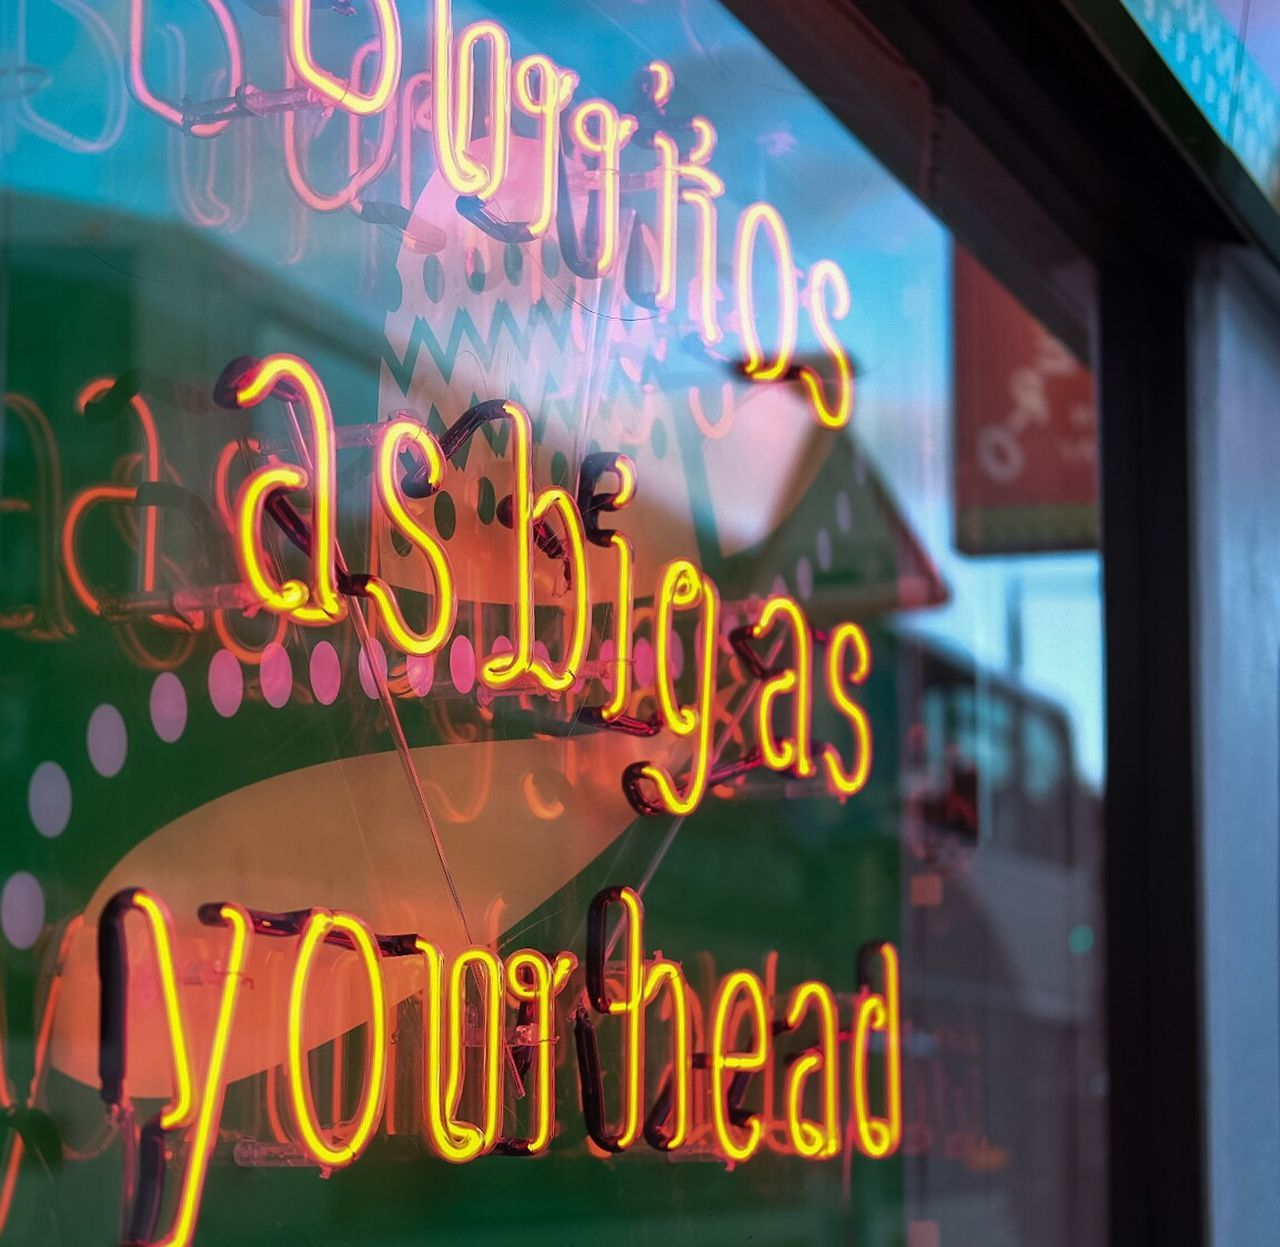 Neon Neon Sign Shop Shop Window Restaurant Takeaway Mexican Food Advertising Food Burrito Time! Edinburgh Show Us Your Takeaway!